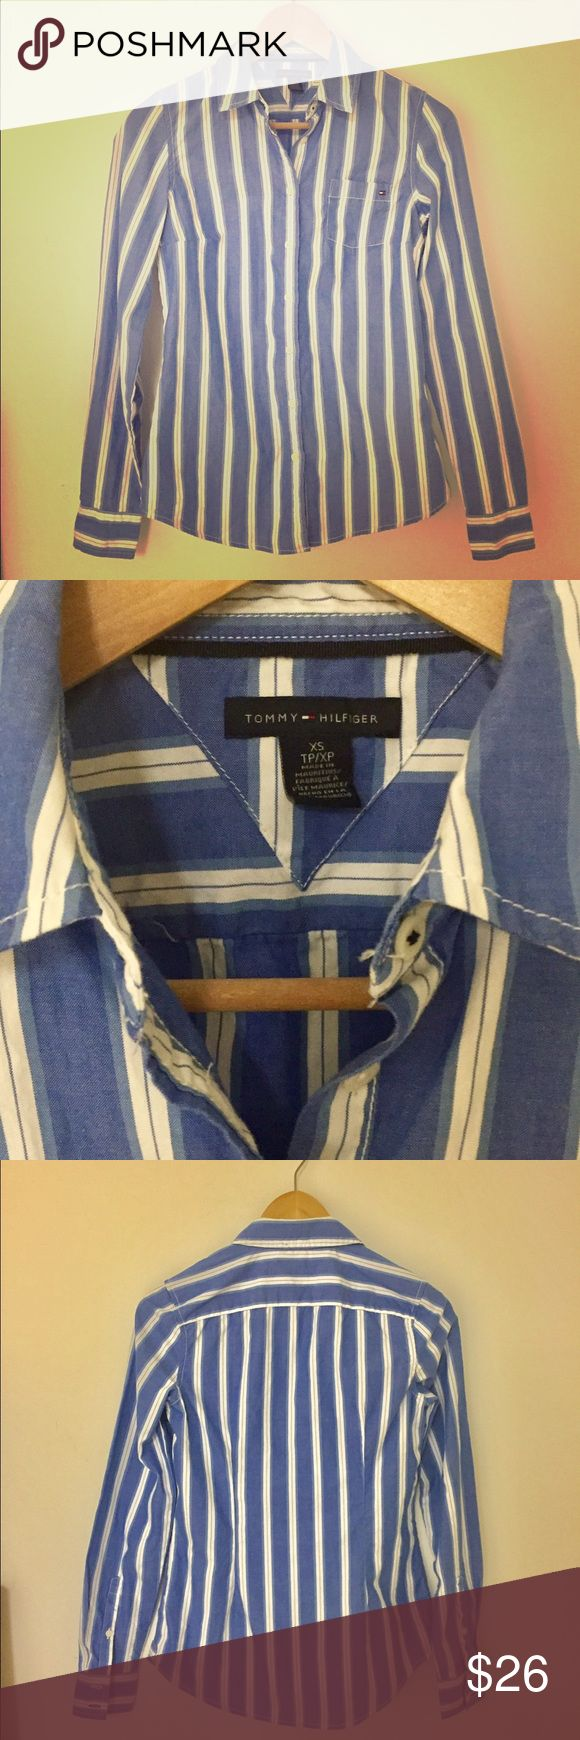 TOMMY HILFIGER Striped Oxford Button Down Shirt TOMMY HILFIGER women's Oxford shirt. Classic American style and comfort. MSRP $79. • Size XS • 100% cotton  • Long sleeves  • Button down  • Blue with white stripes & white buttons Tommy Hilfiger Tops Button Down Shirts